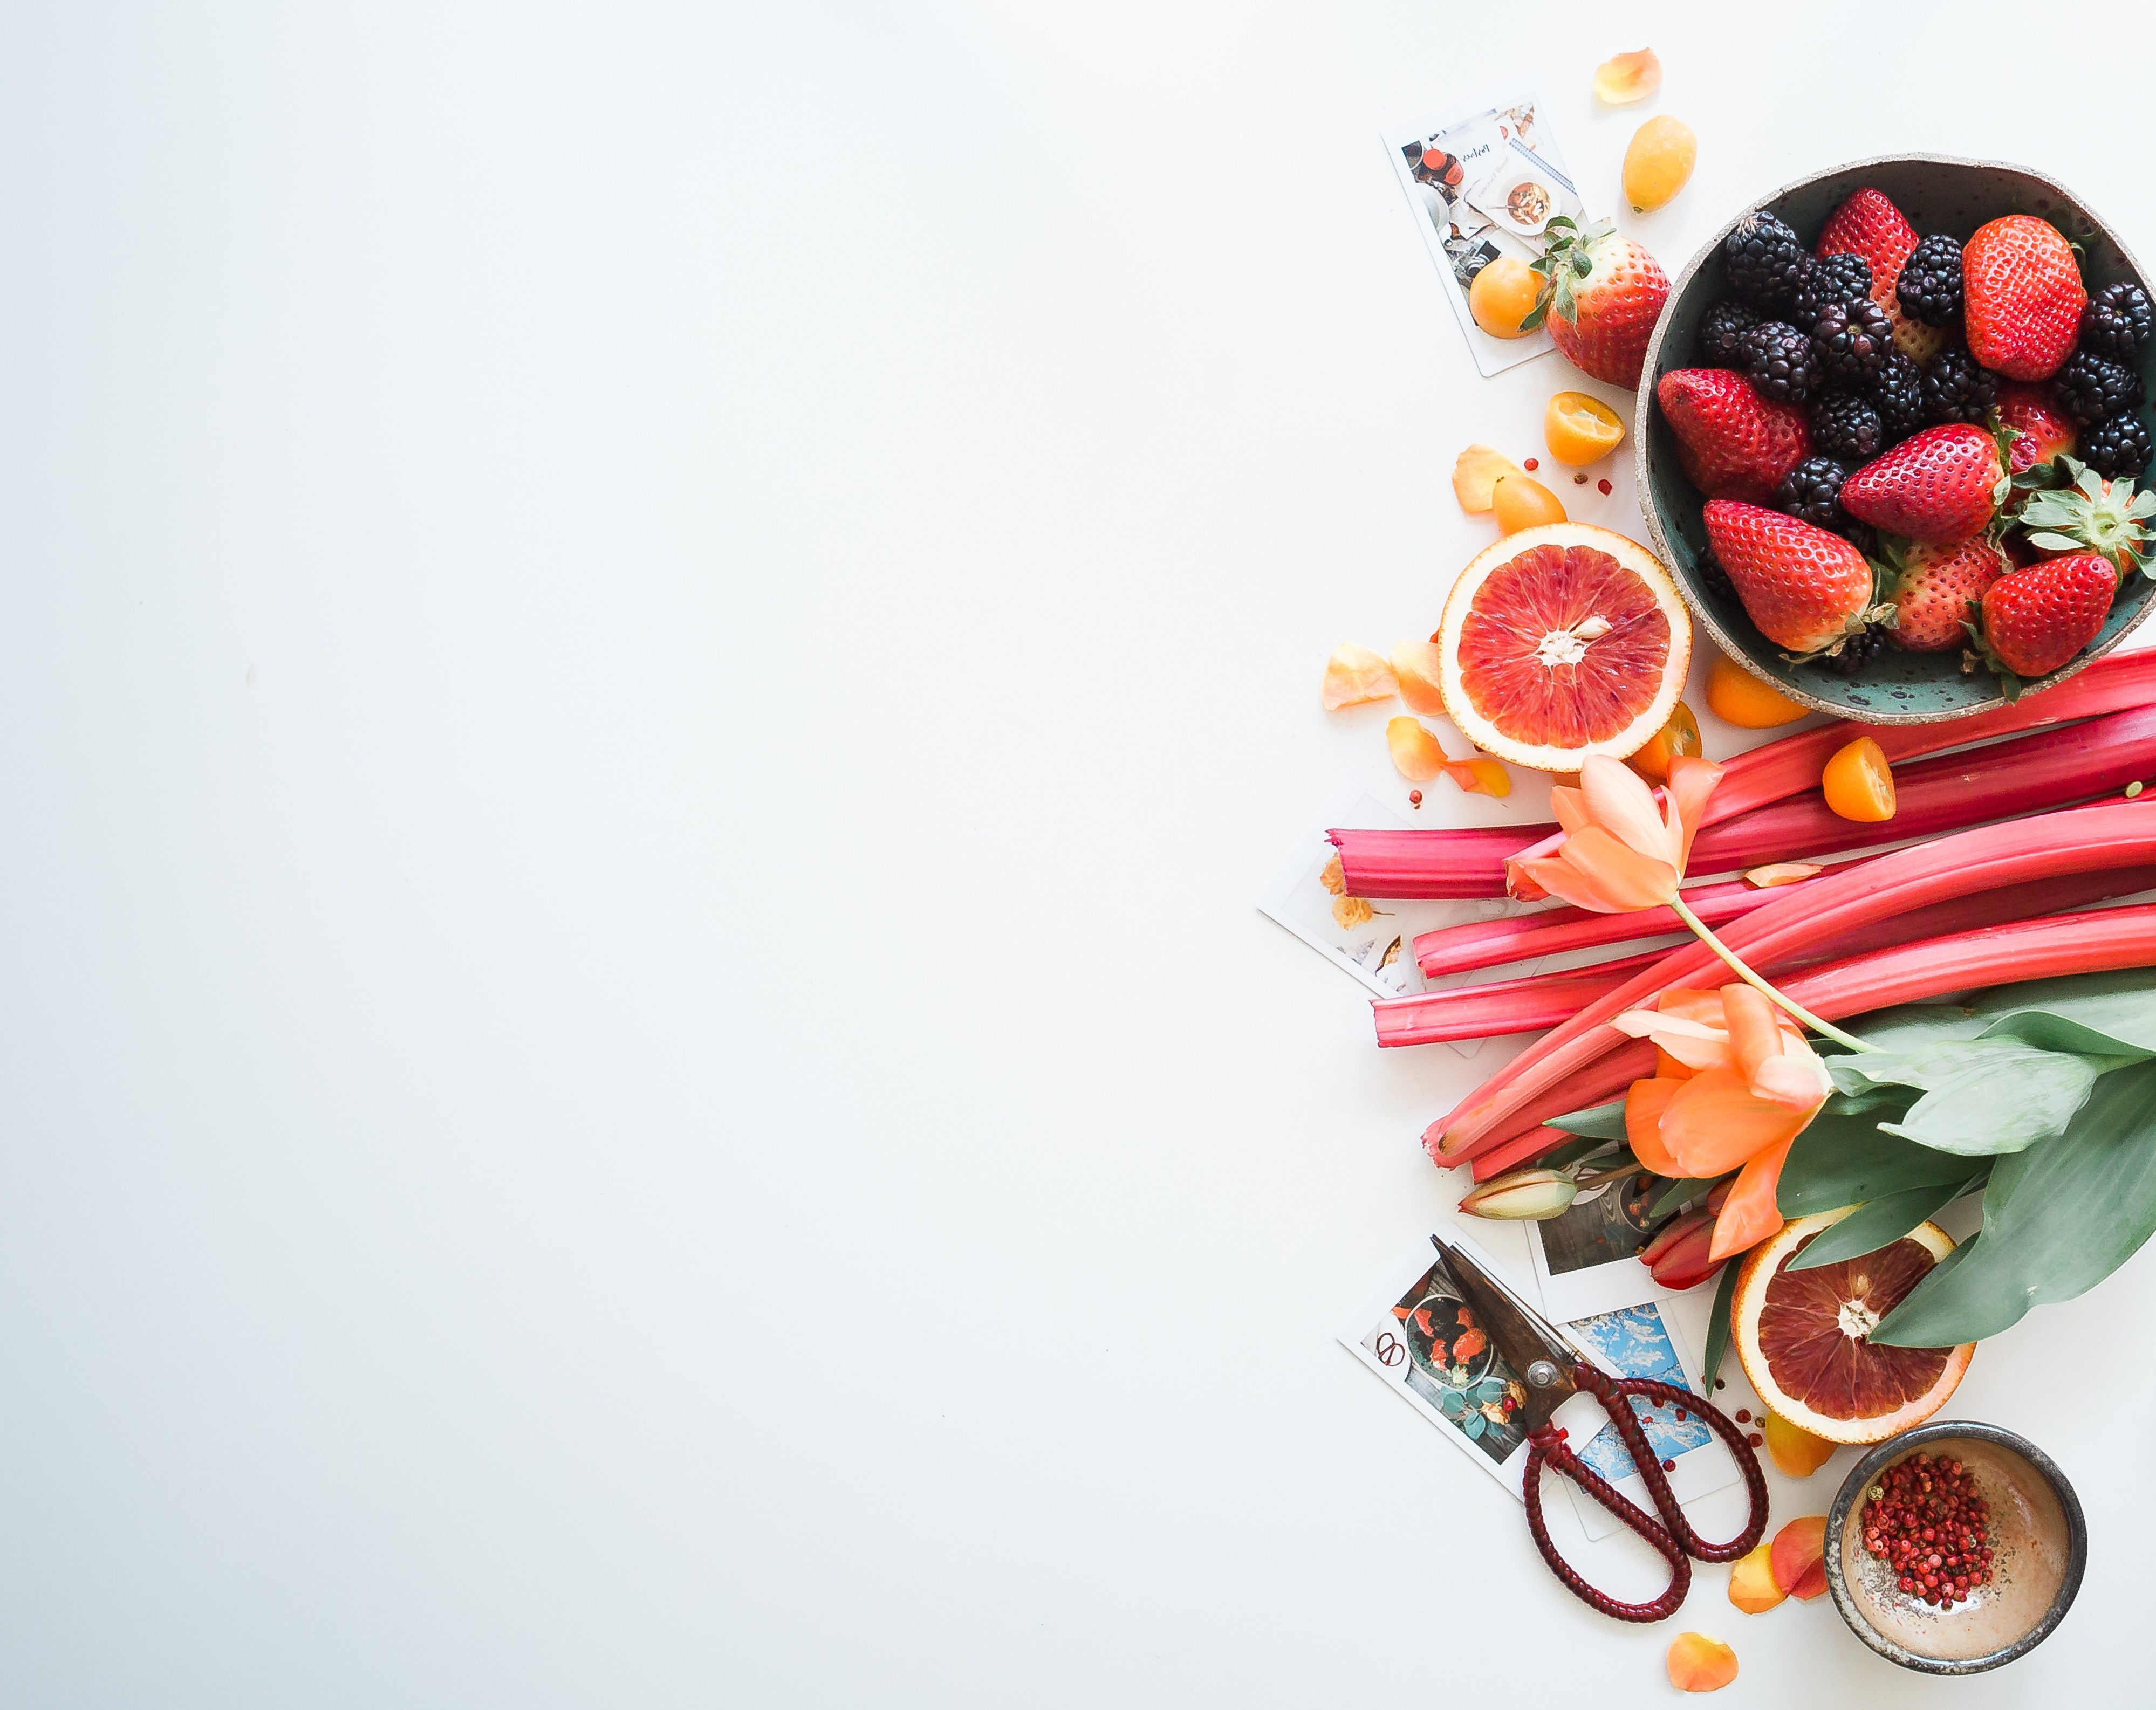 Rhubarb, a bowl of berries, two halves of blood oranges and various other fruits on a white background.